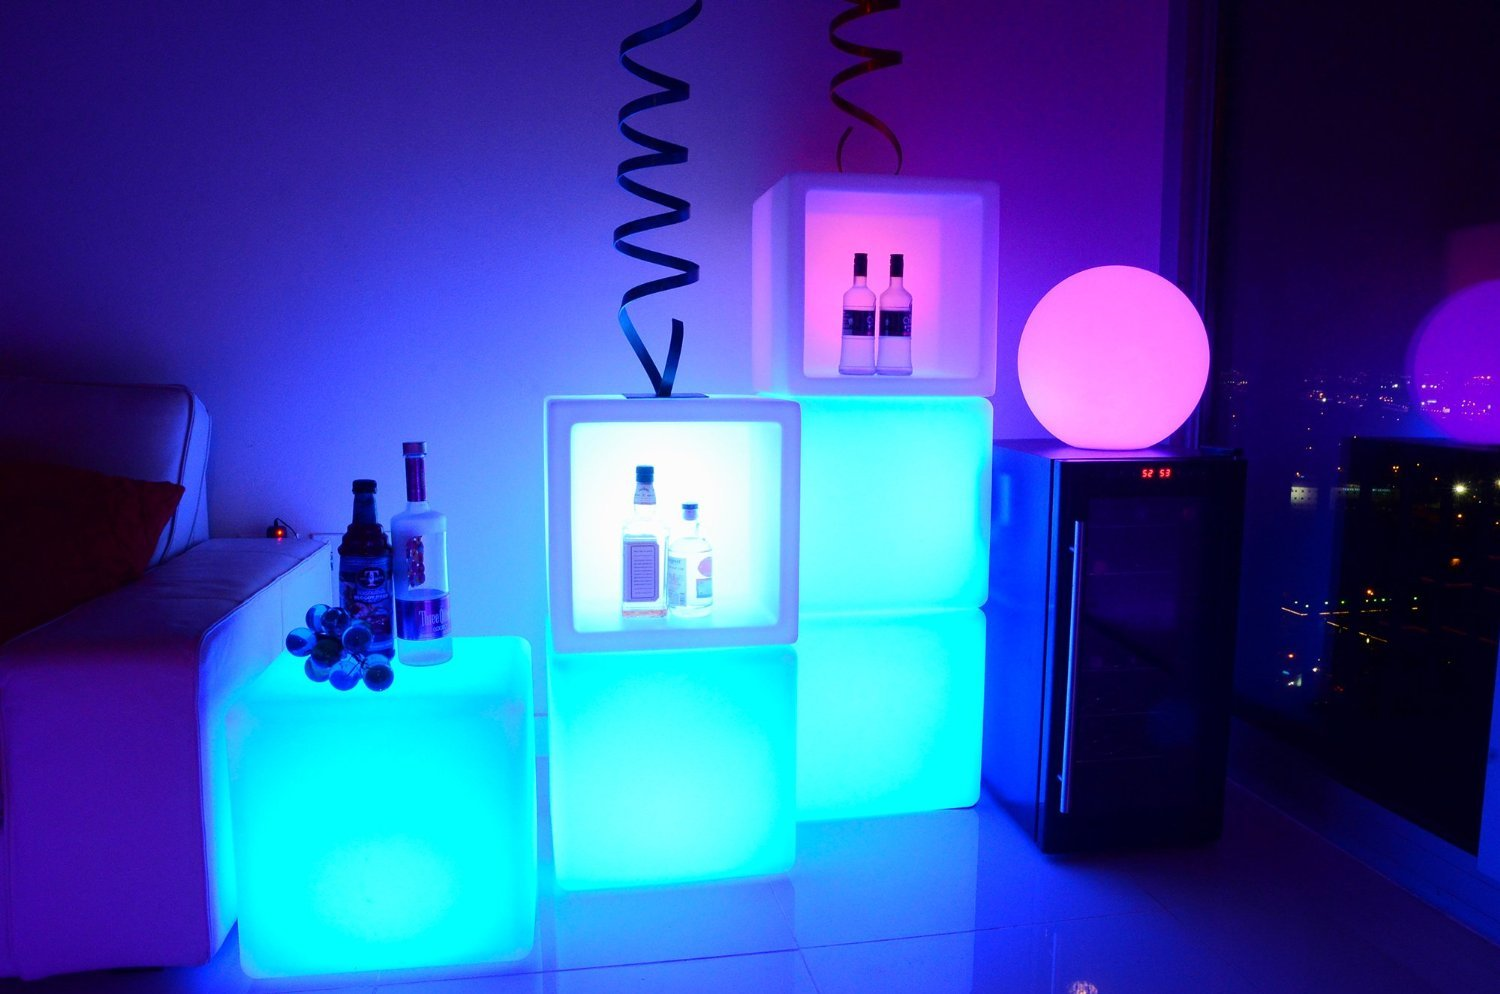 Mr.Go Outdoor/Indoor Rechargeable LED Light SEMI-STORAGE CUBE 16'', Cordless with Remote Control RGB Color Changing Glowing Furniture Cabinet Container End Table Ice Bucket Flower Pot Planter by Mr.Go (Image #5)